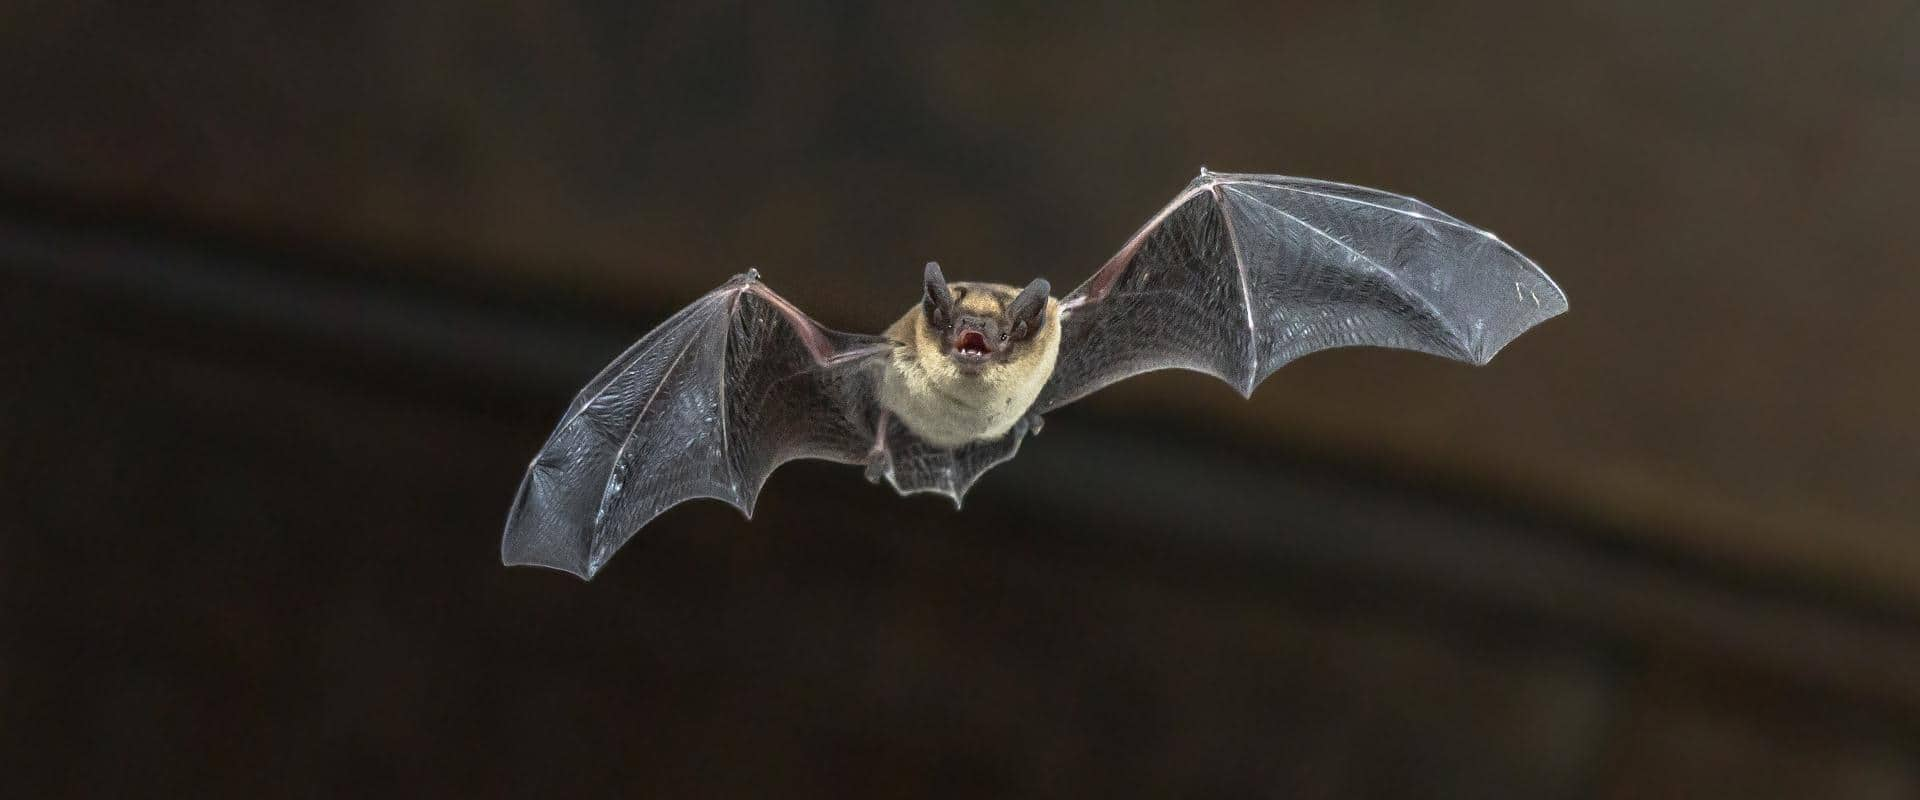 bat flying through air in central washington